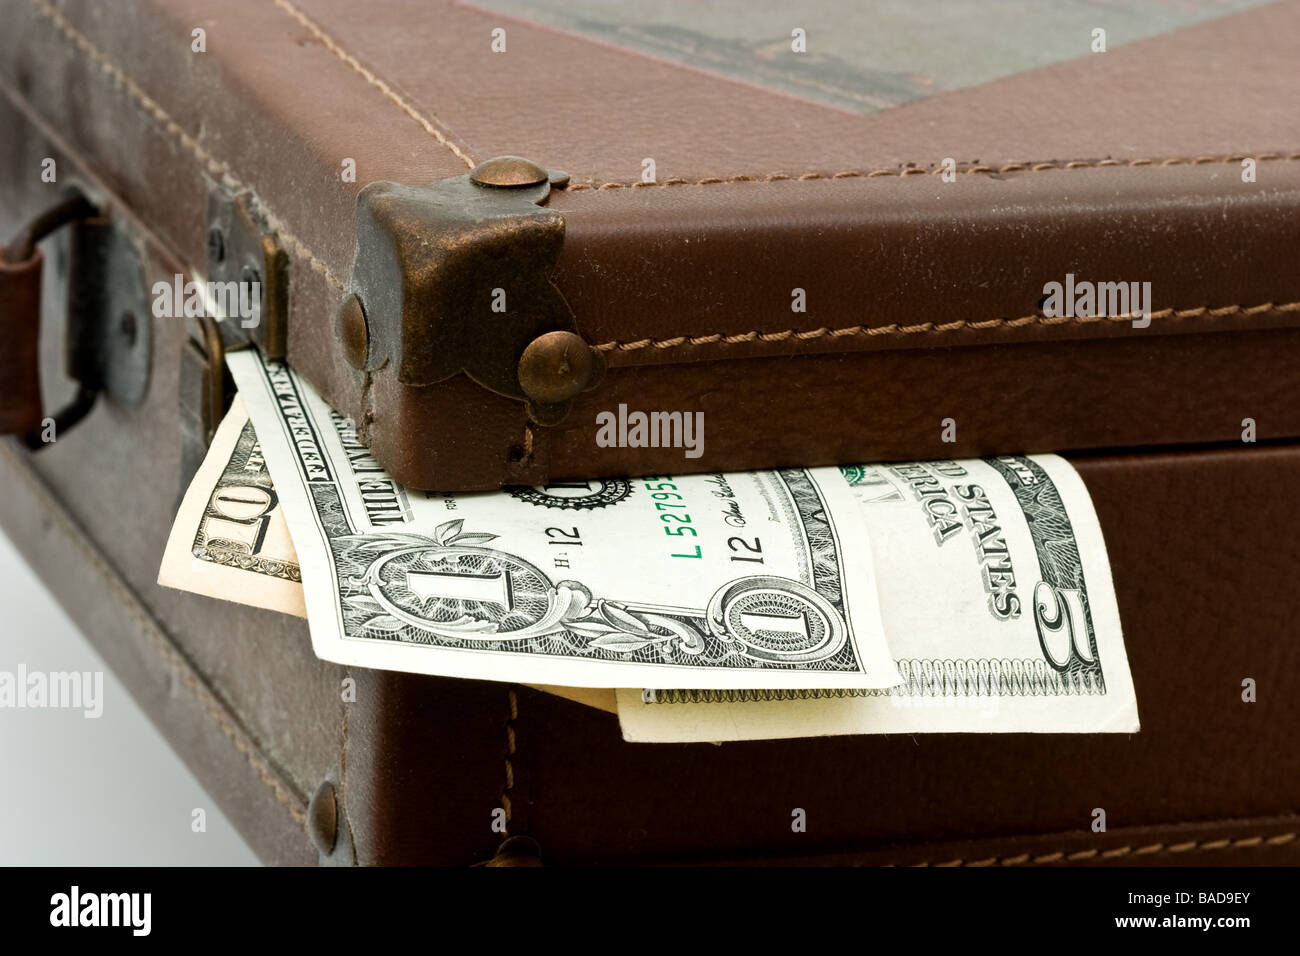 American paper currency hanging out of the corner of an old brown suitcase - Stock Image